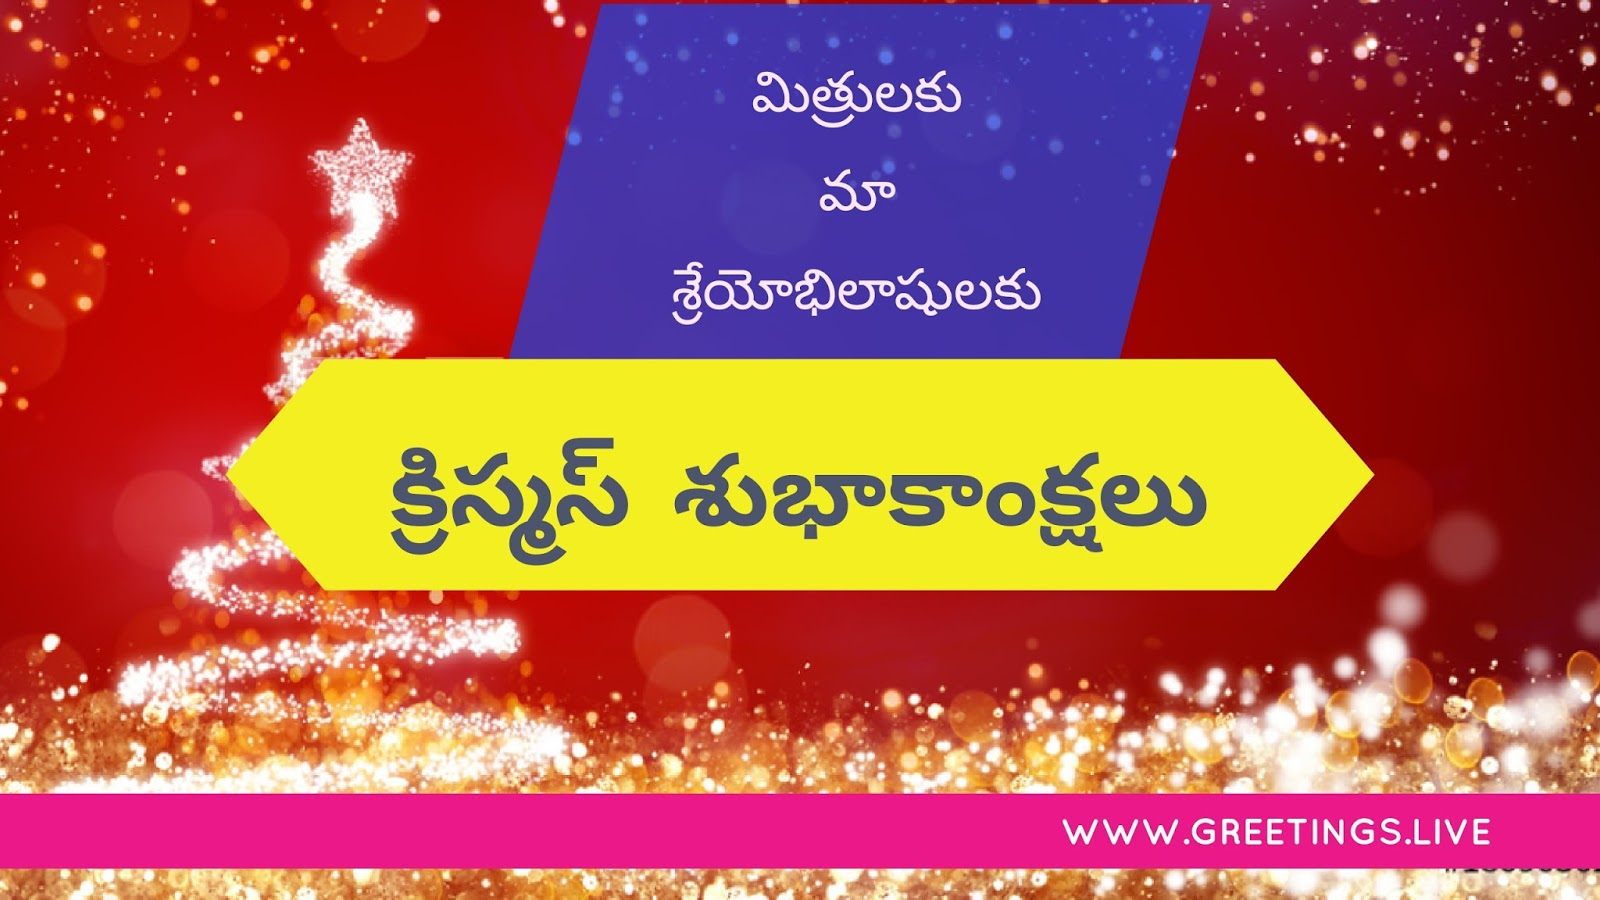 2018 new year wishes greetings christmas greetings in telugu merry christmas greetings in telugu language kristyandbryce Images